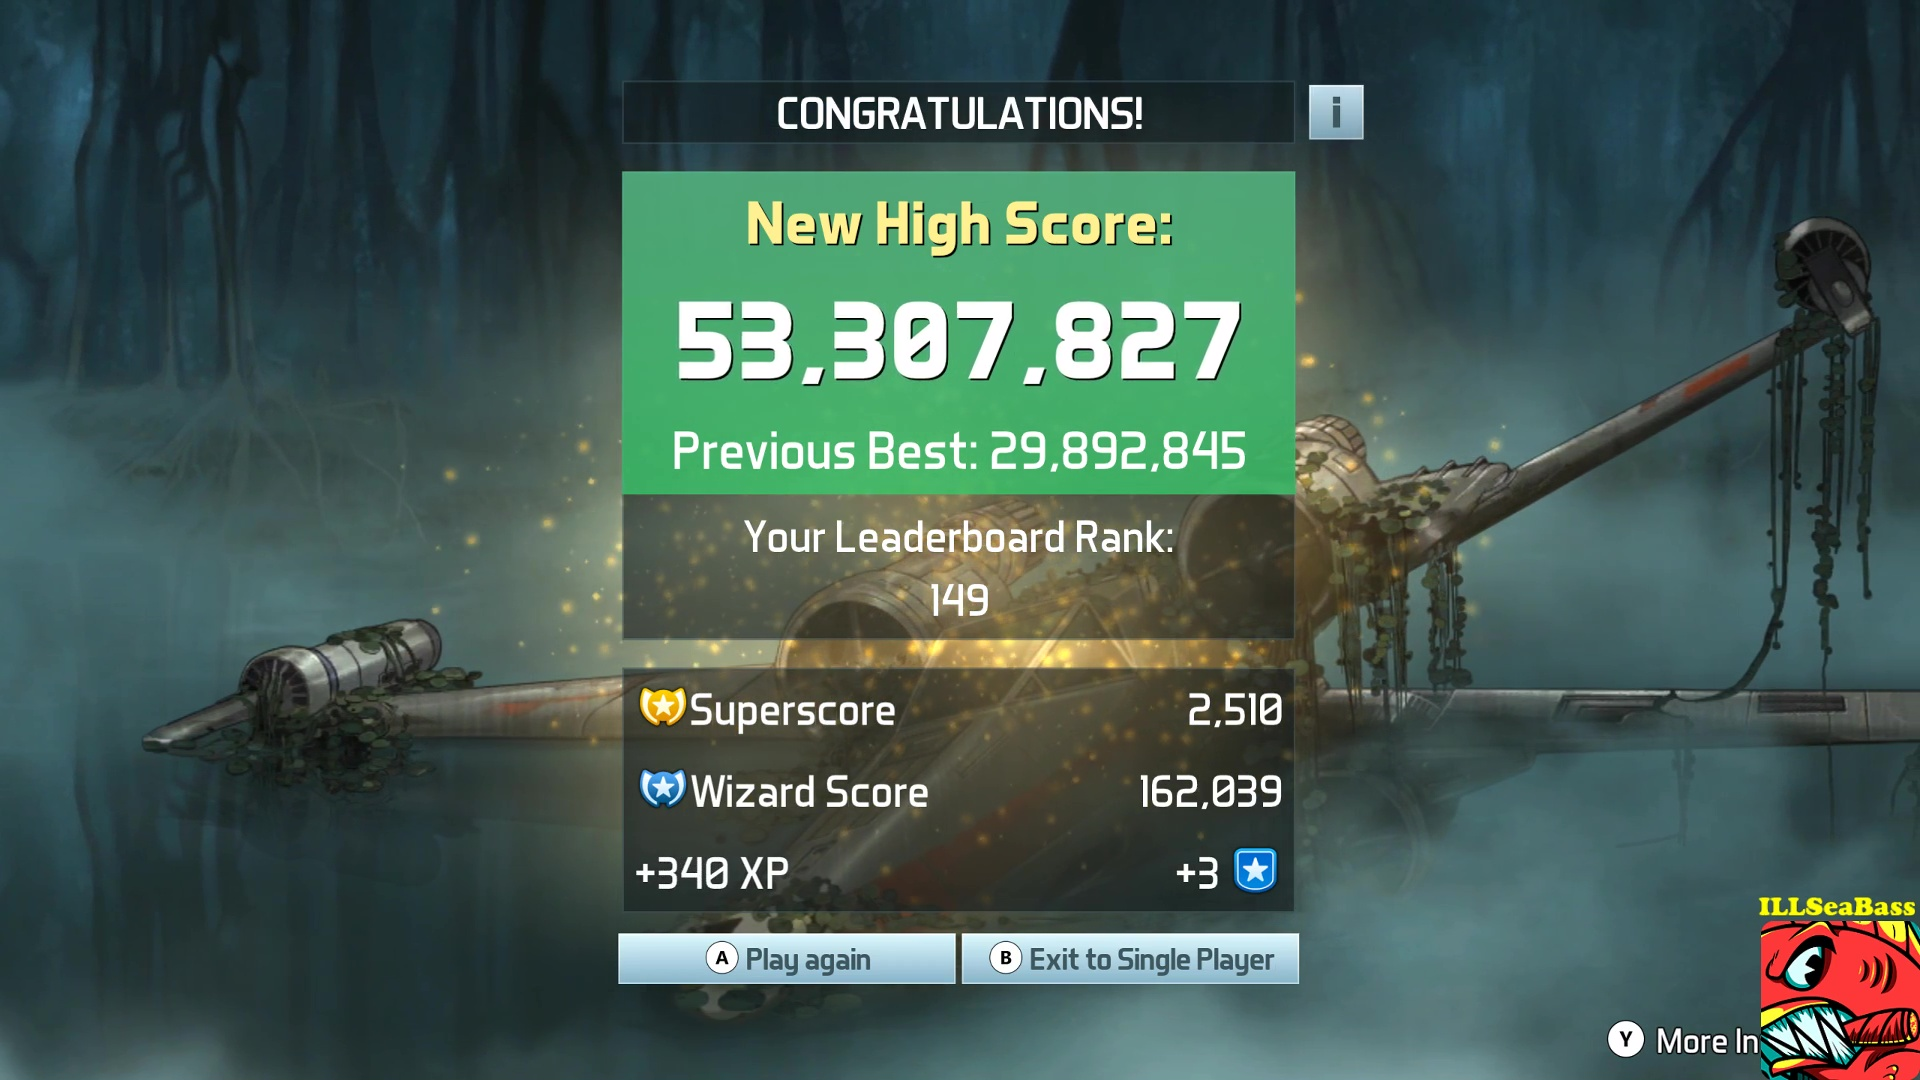 ILLSeaBass: Pinball FX3: Star Wars Pinball: Episode V The Empire Strikes Back (PC) 53,307,827 points on 2017-10-29 11:01:58